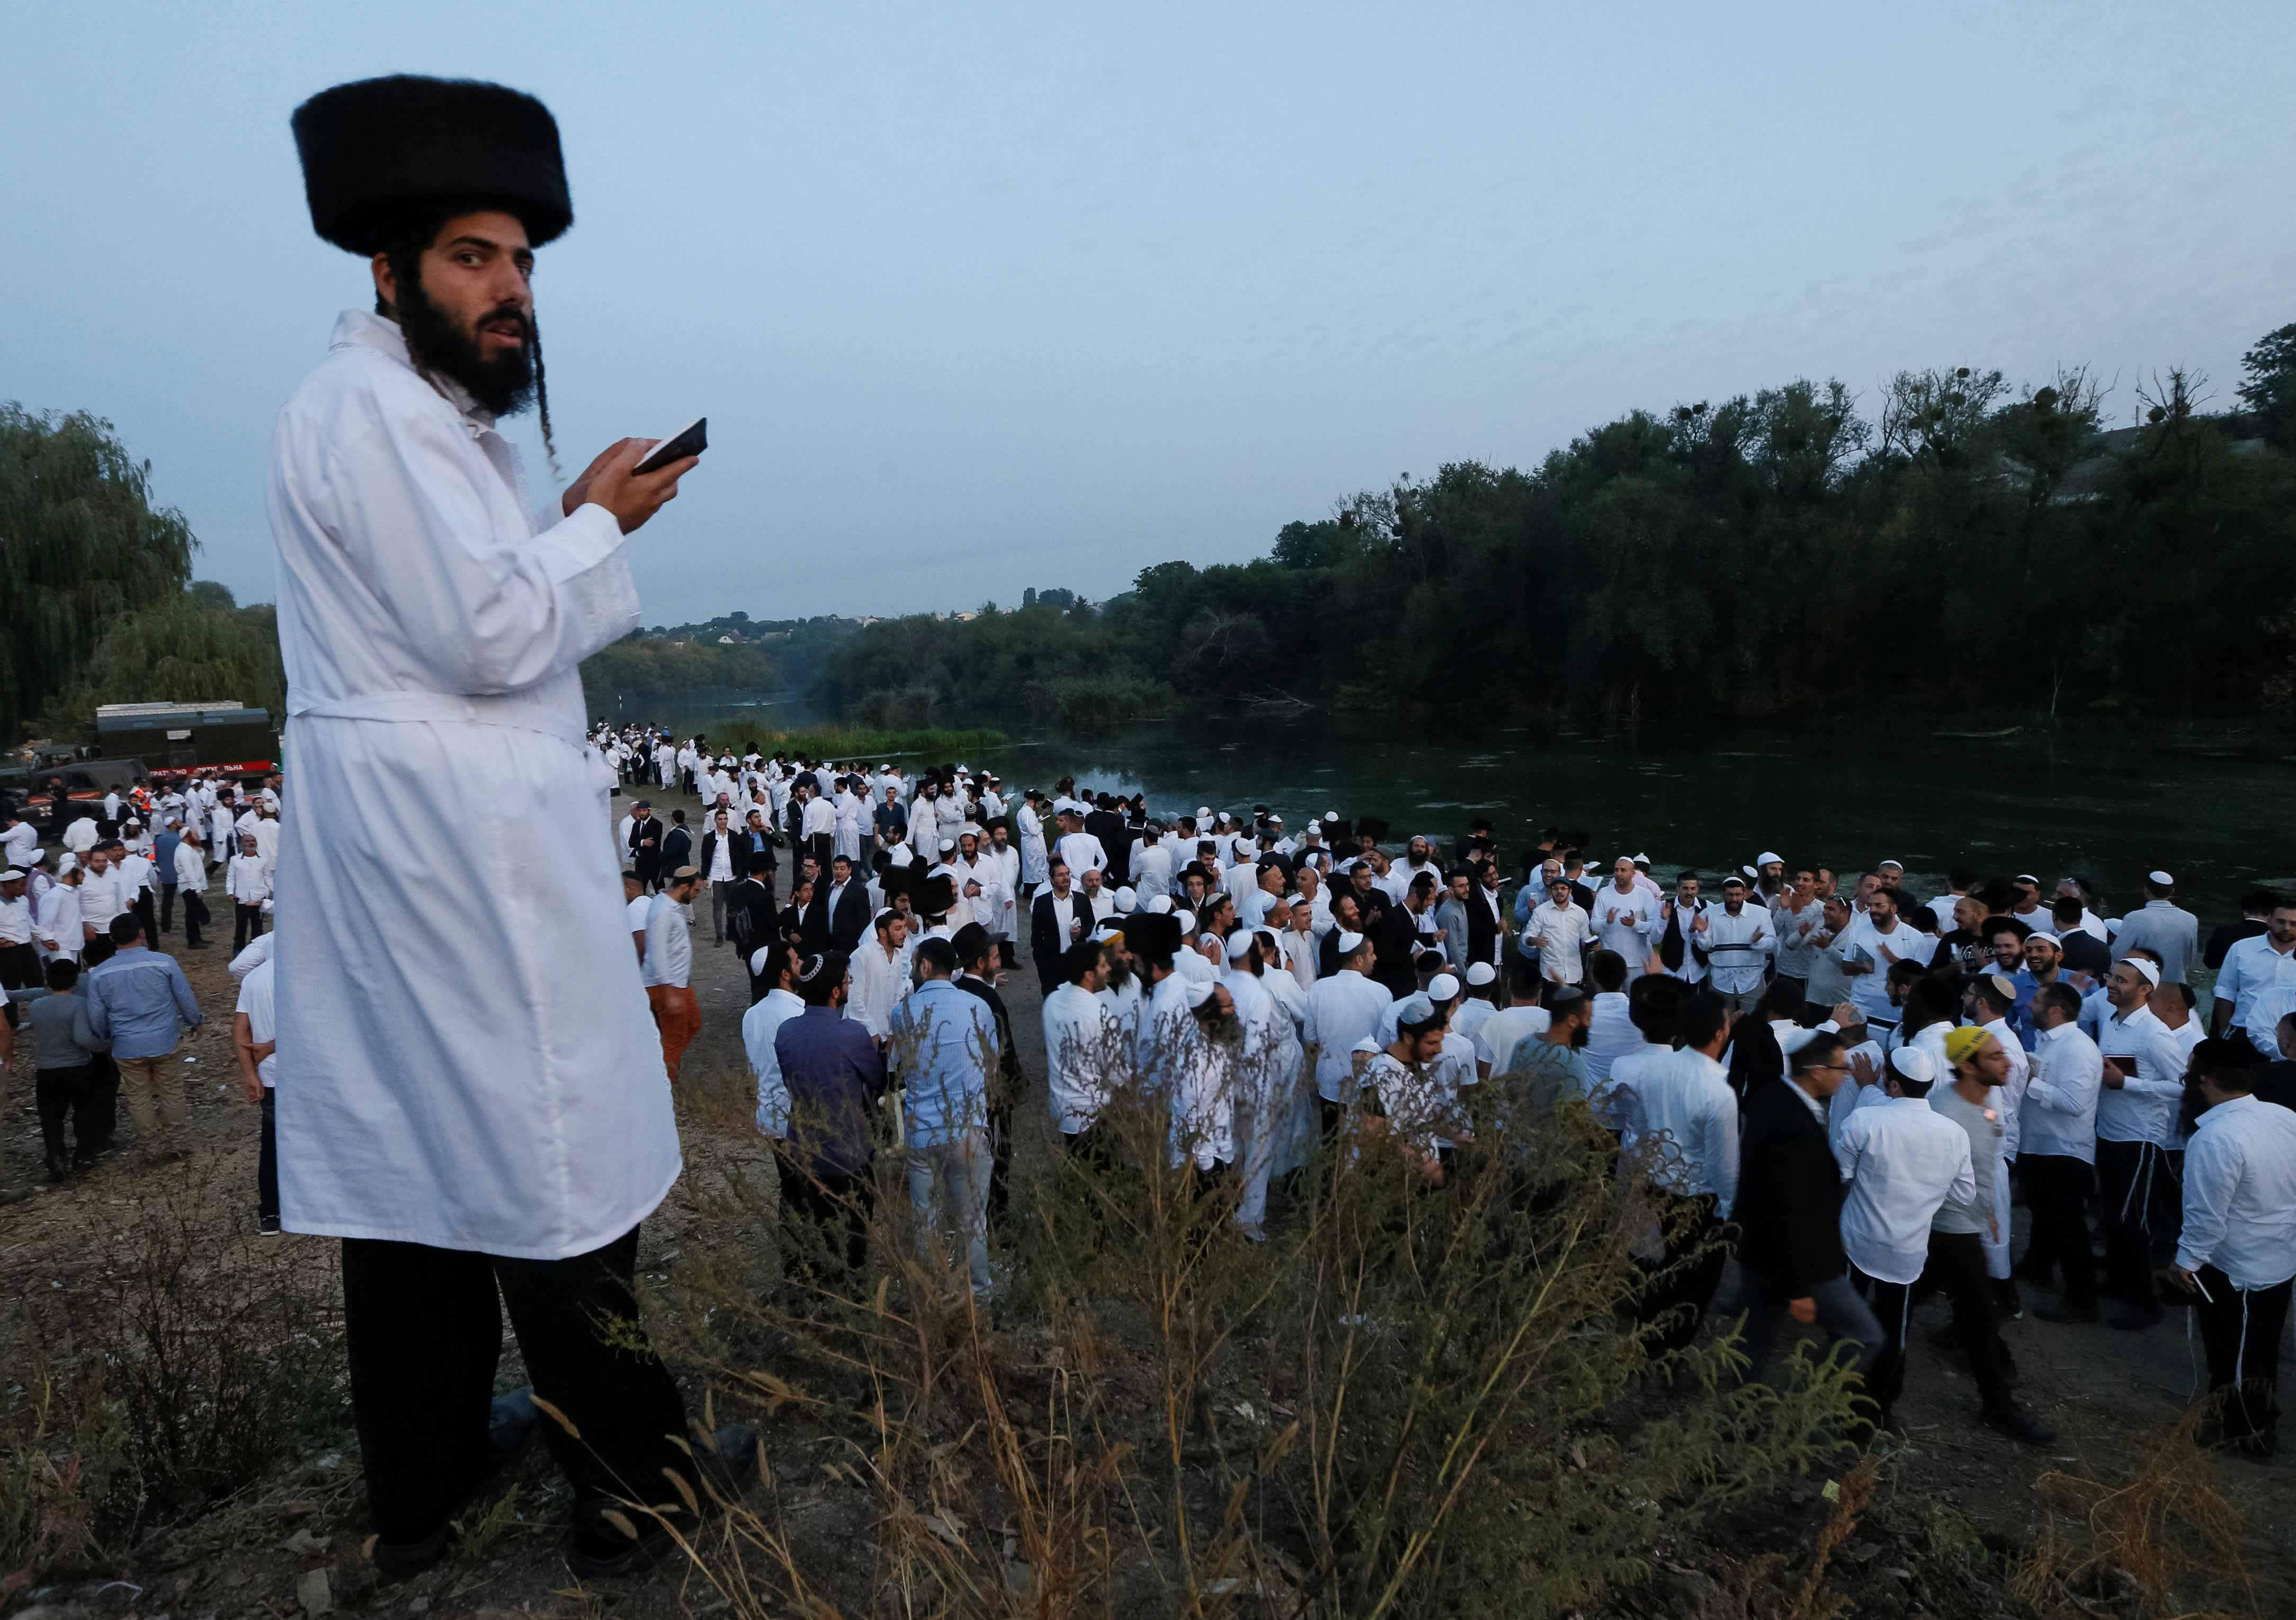 Ultra-Orthodox Jewish pilgrims pray on a bank of a lake near the tomb of Rabbi Nachman of Breslov during the celebration of Rosh Hashana holiday, the Jewish New Year, in Uman, Ukraine, September 21, 2017. (Reuters)